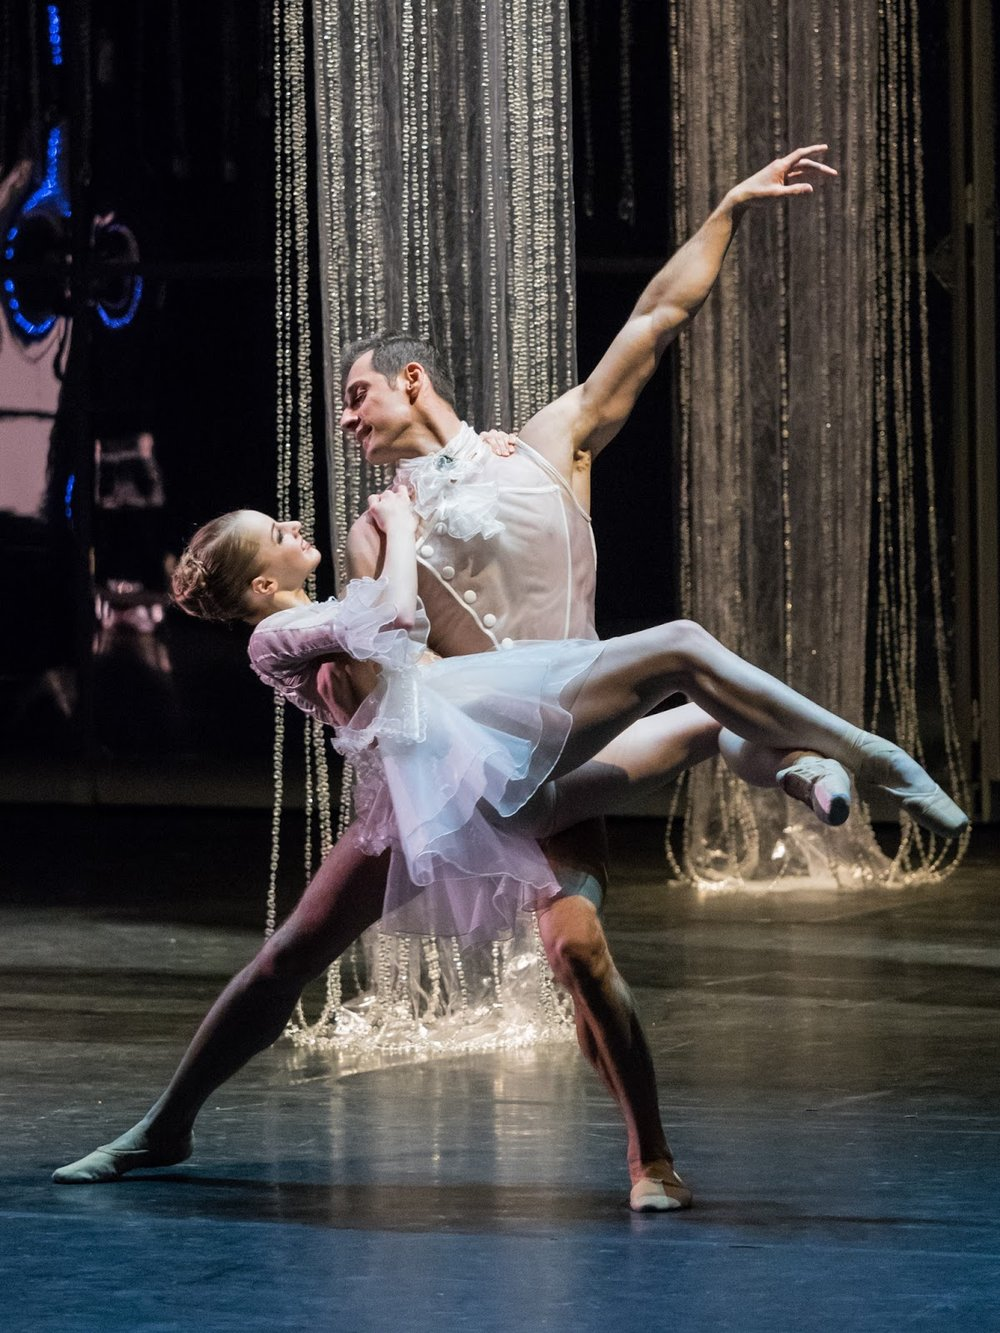 Natascha Mair & Kamil Pavelka / Copyright: Ashley Taylor